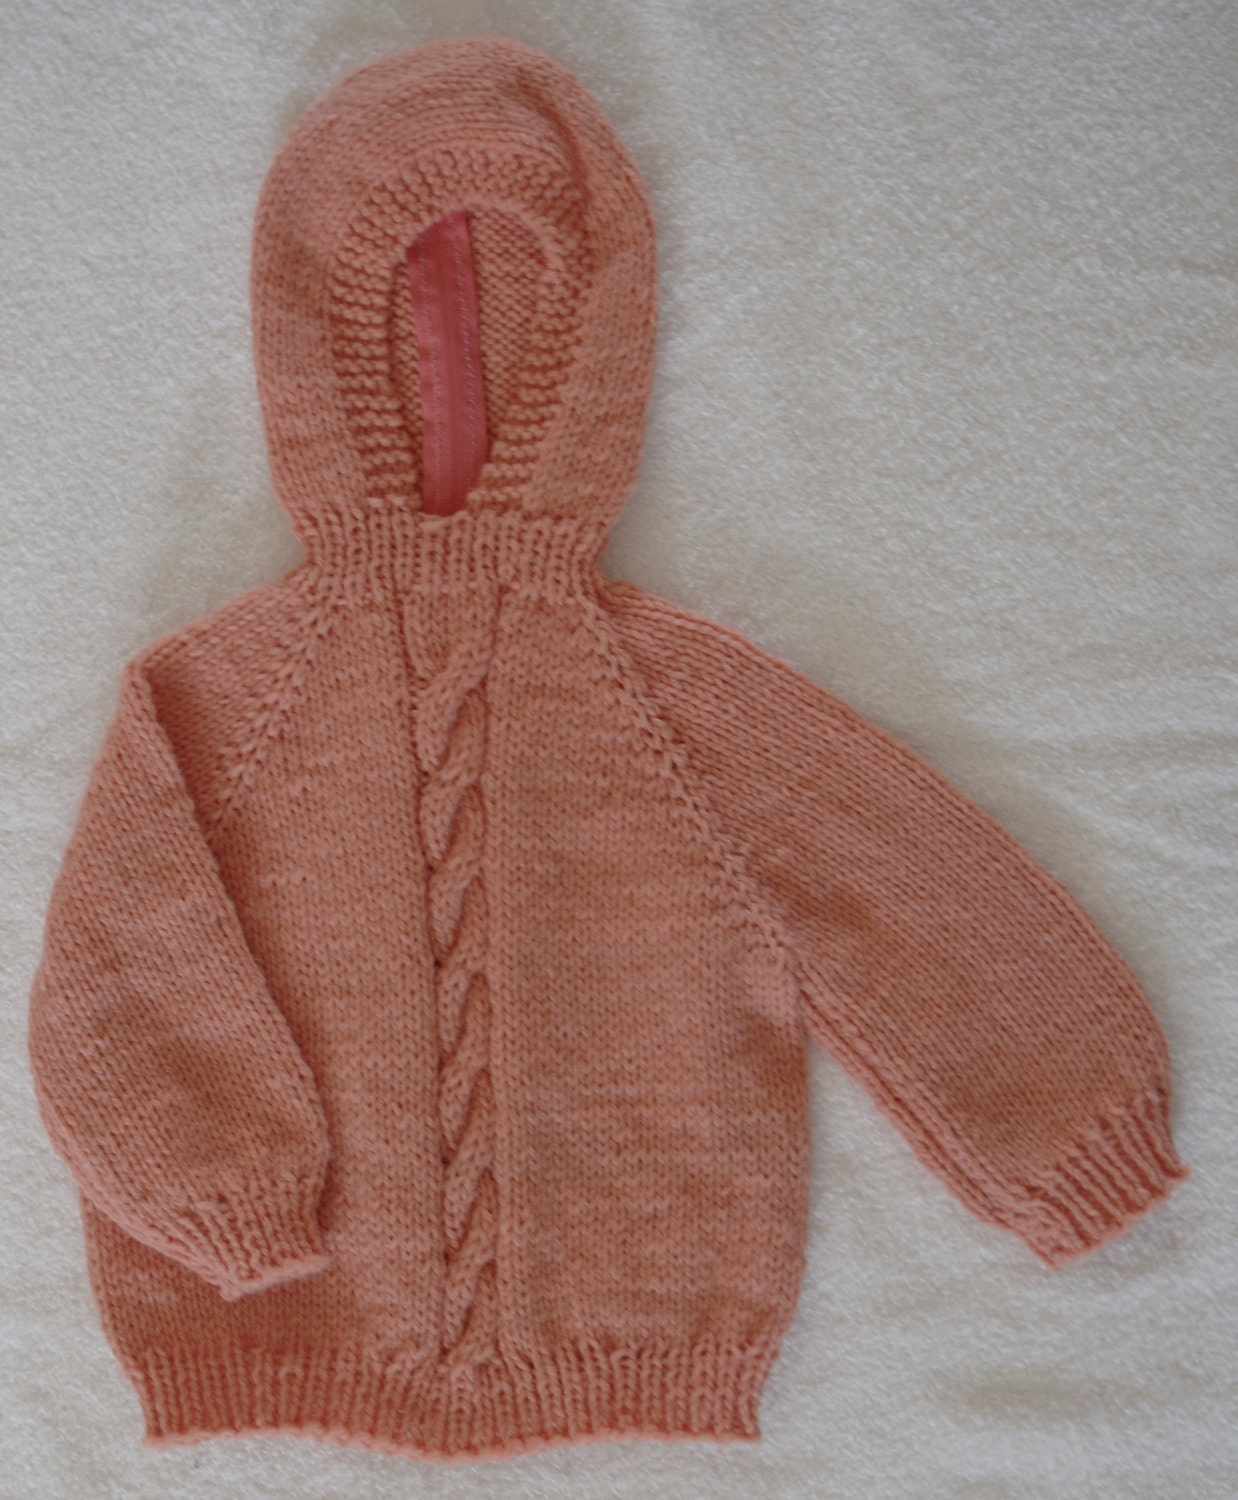 Knitting Pattern For Zip Up Back Baby Sweater : Knitted Hooded Baby Sweater with Back Zipper 12 by ...